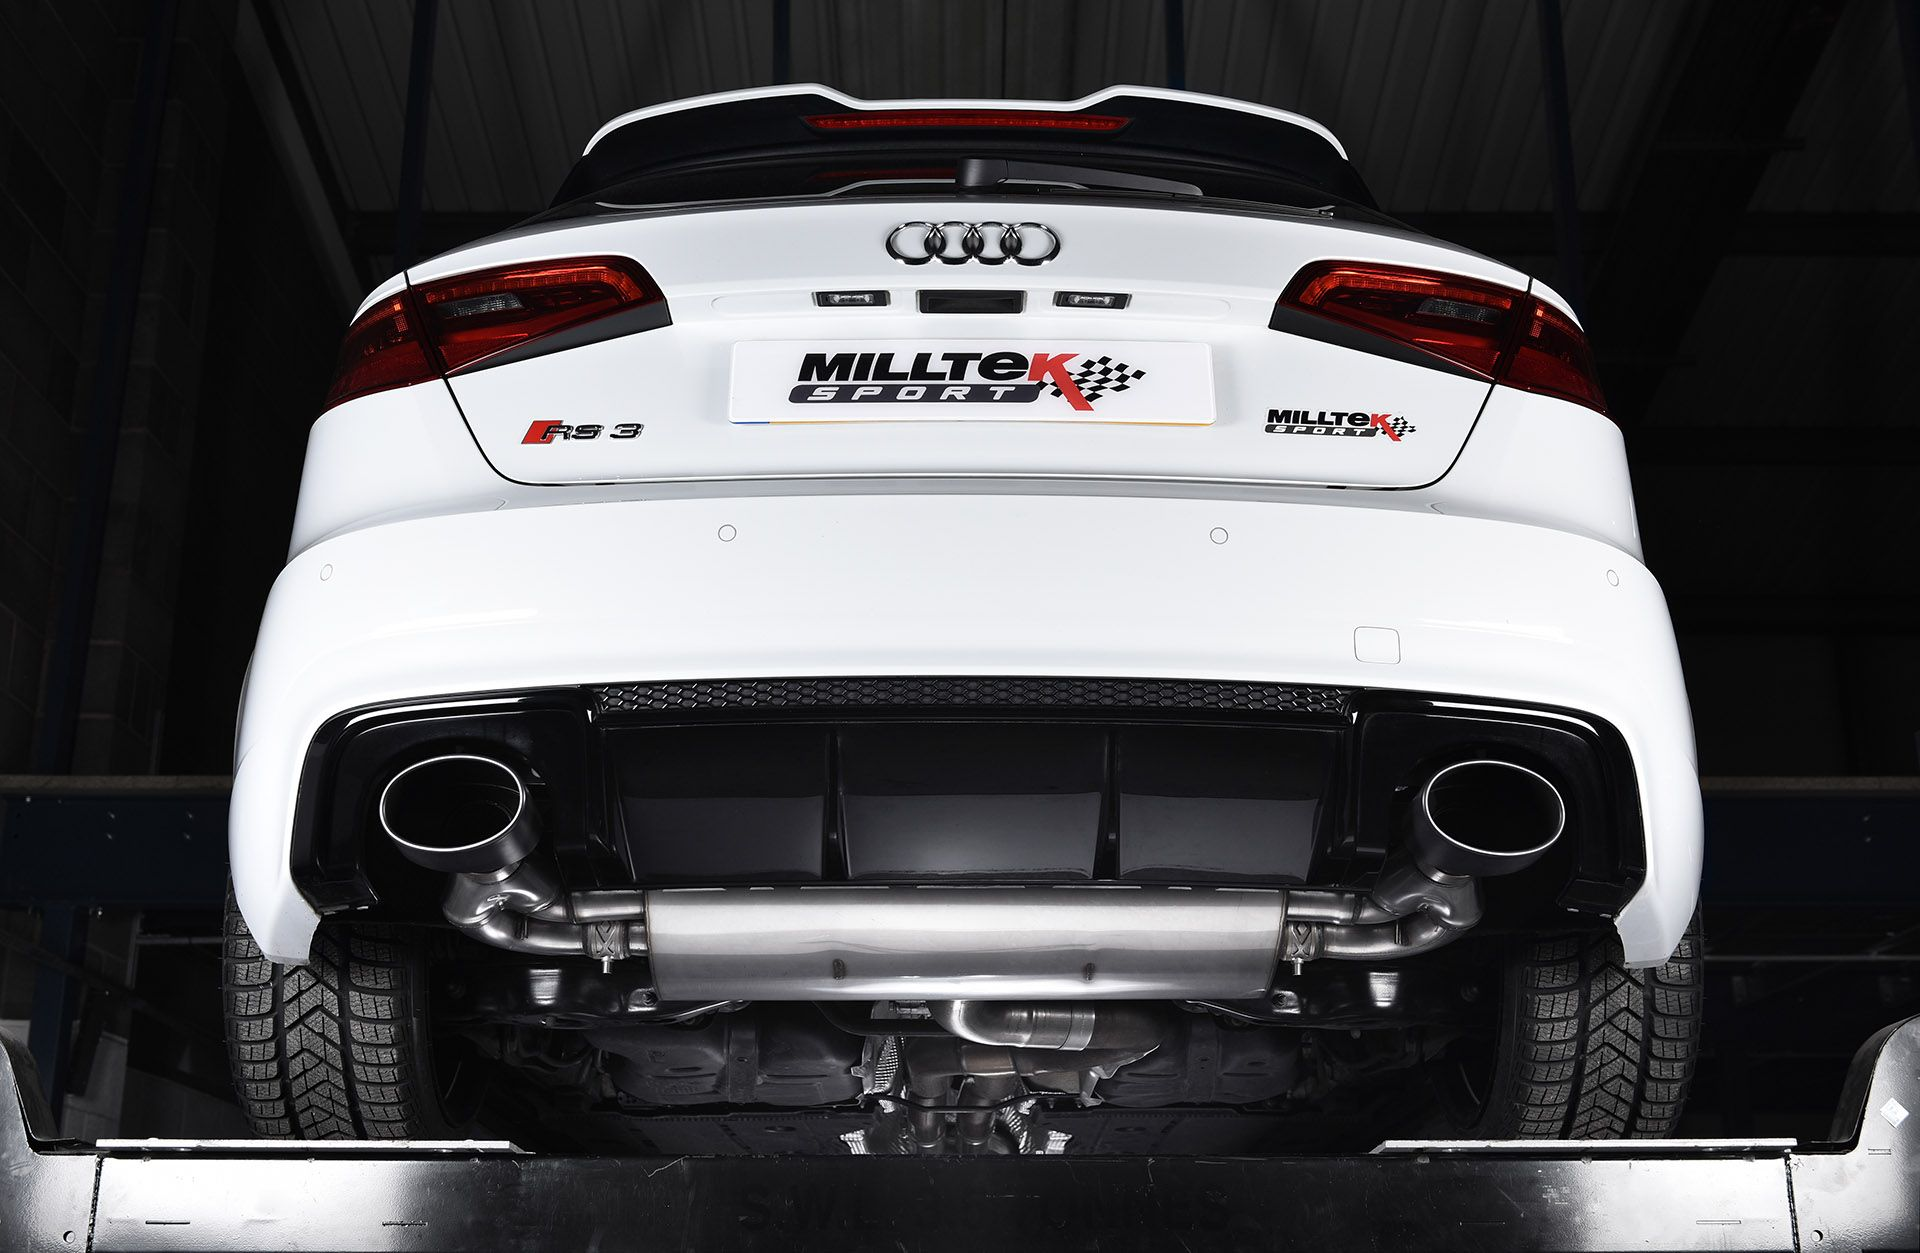 Milltek sport performance exhaust systems for the audi rs3 sportback 8v mqb